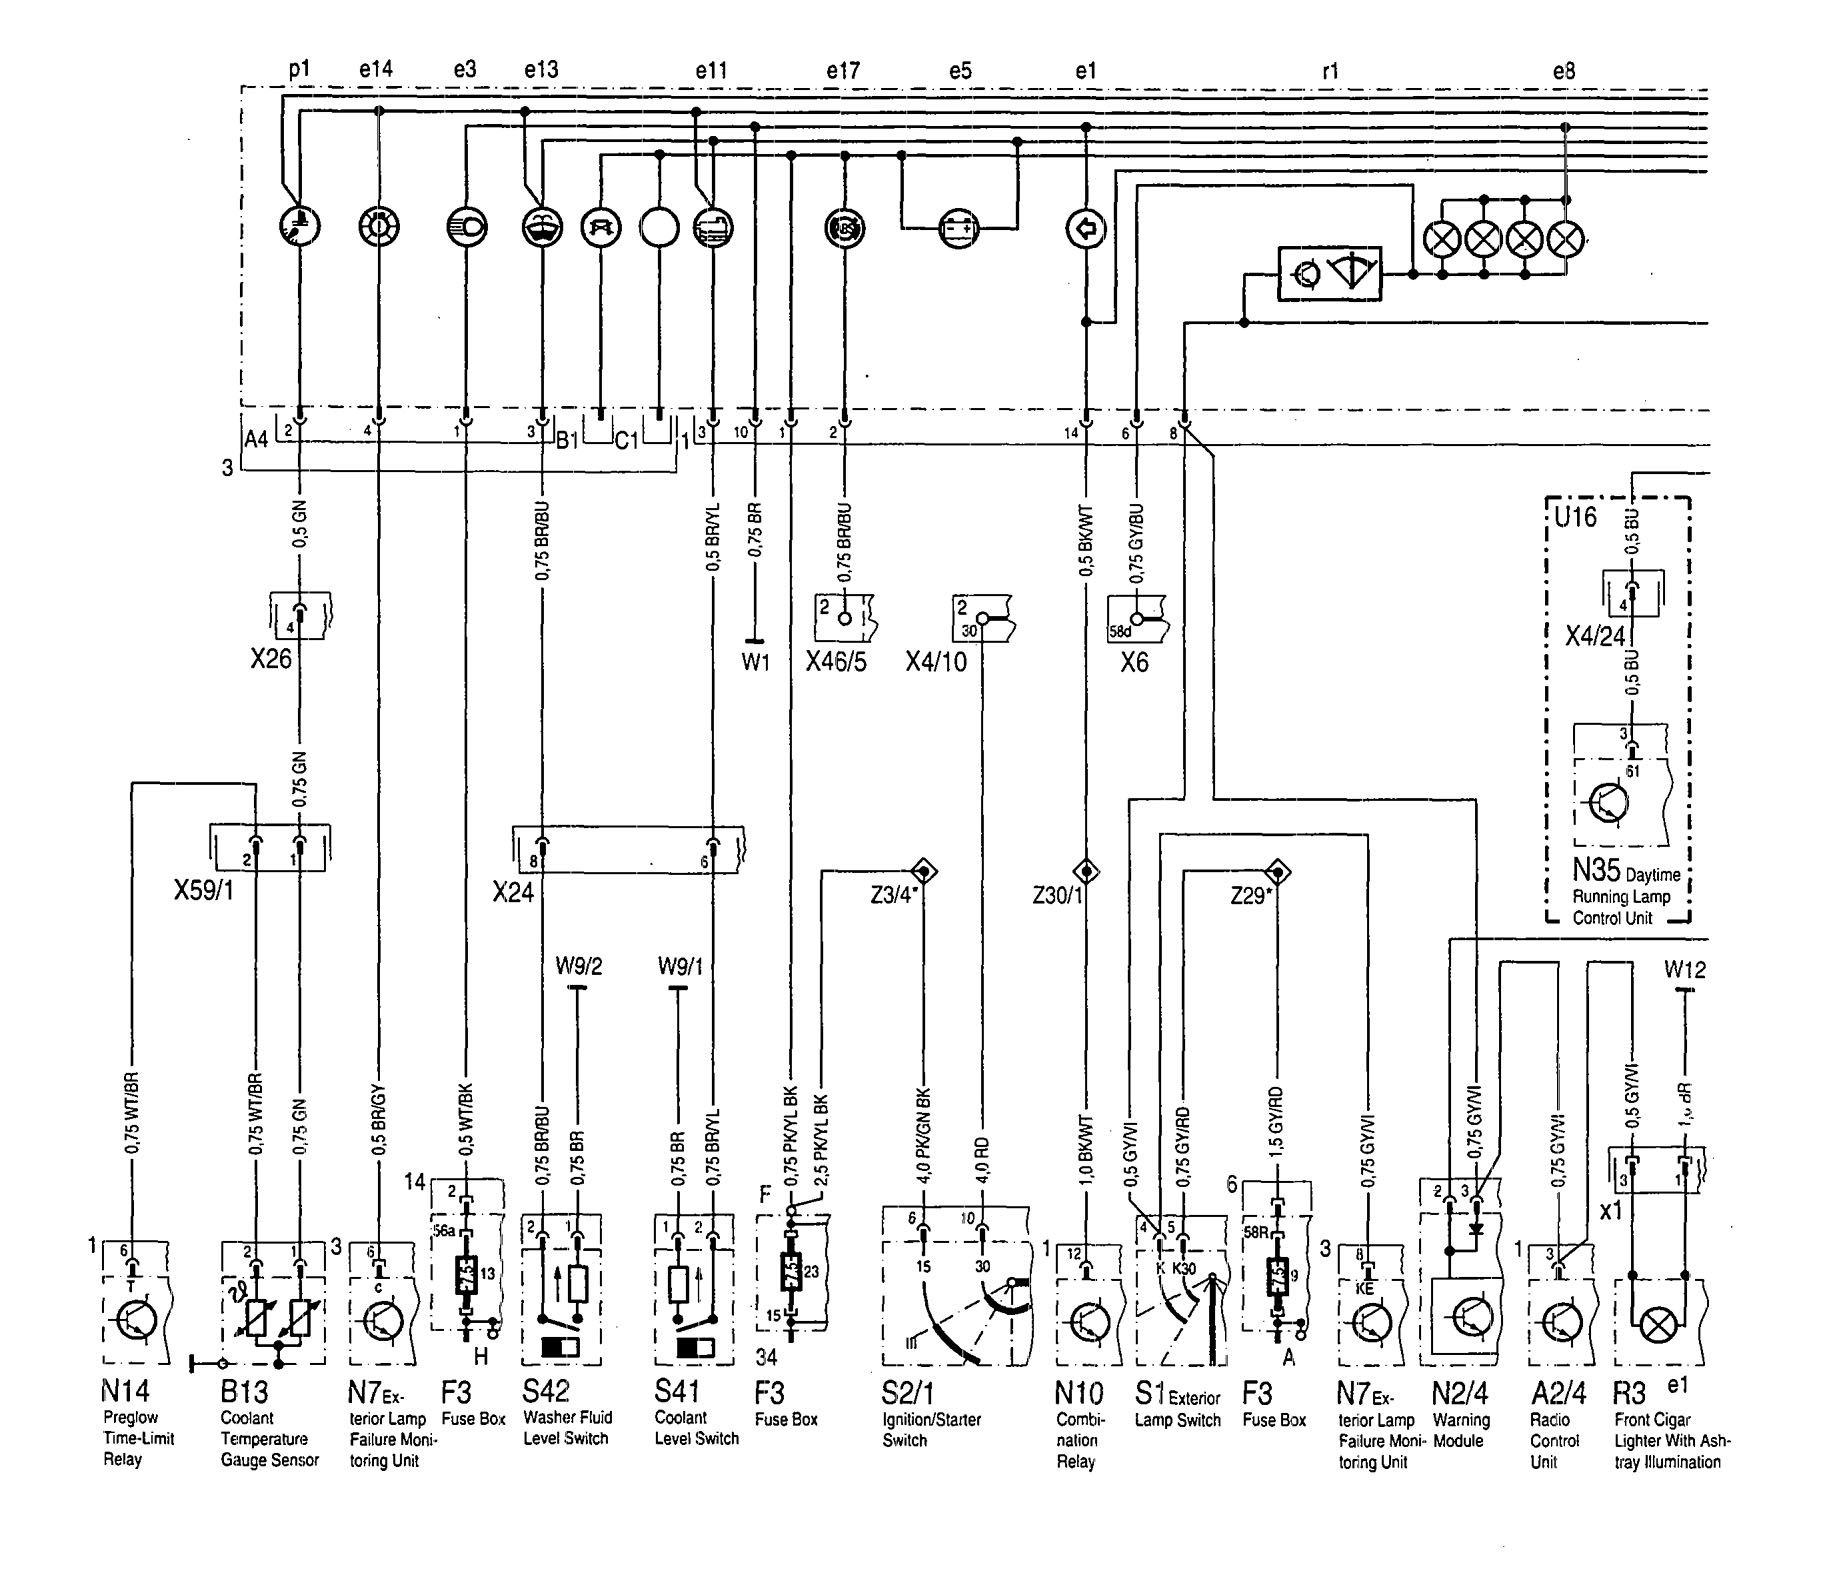 Mercedes Benz 300sd Wiring Diagram Layout Diagrams S Cl W126 1983 Fuse Box 1992 1993 Rh Carknowledge Info Radio Harness